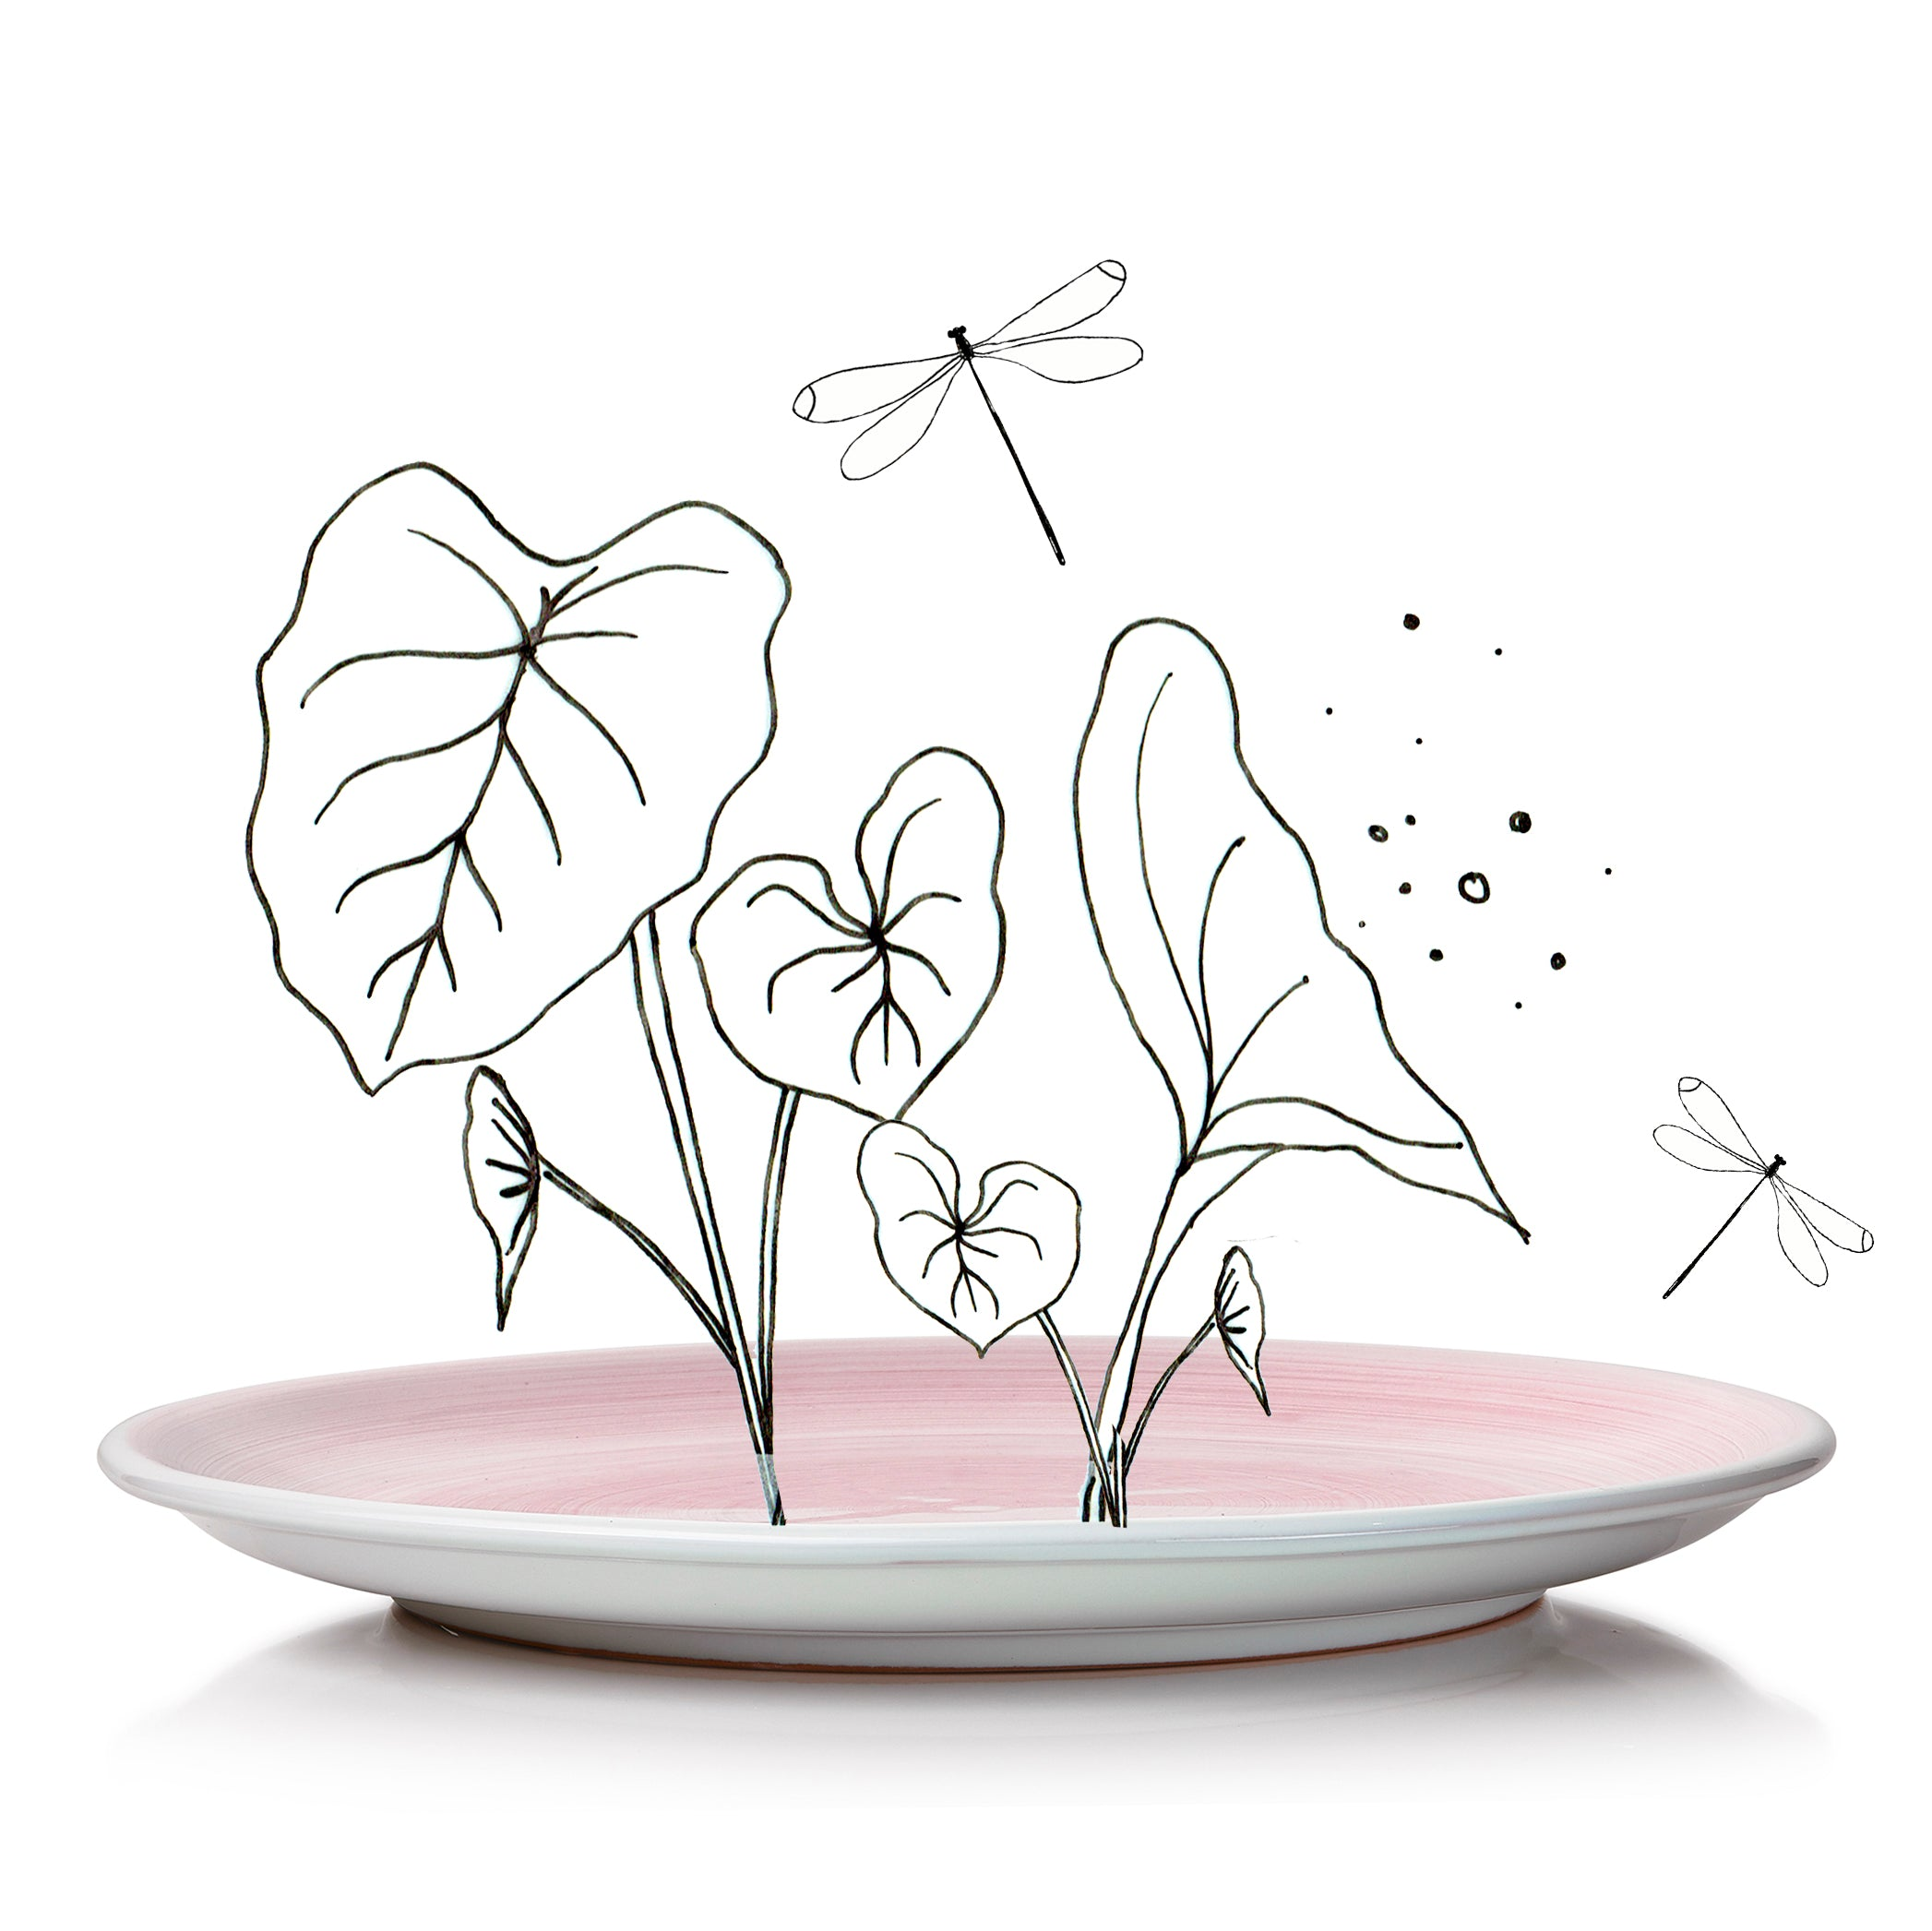 S&B 'Brushed' Ceramic Dinner Plate in Pastel Pink, 28cm